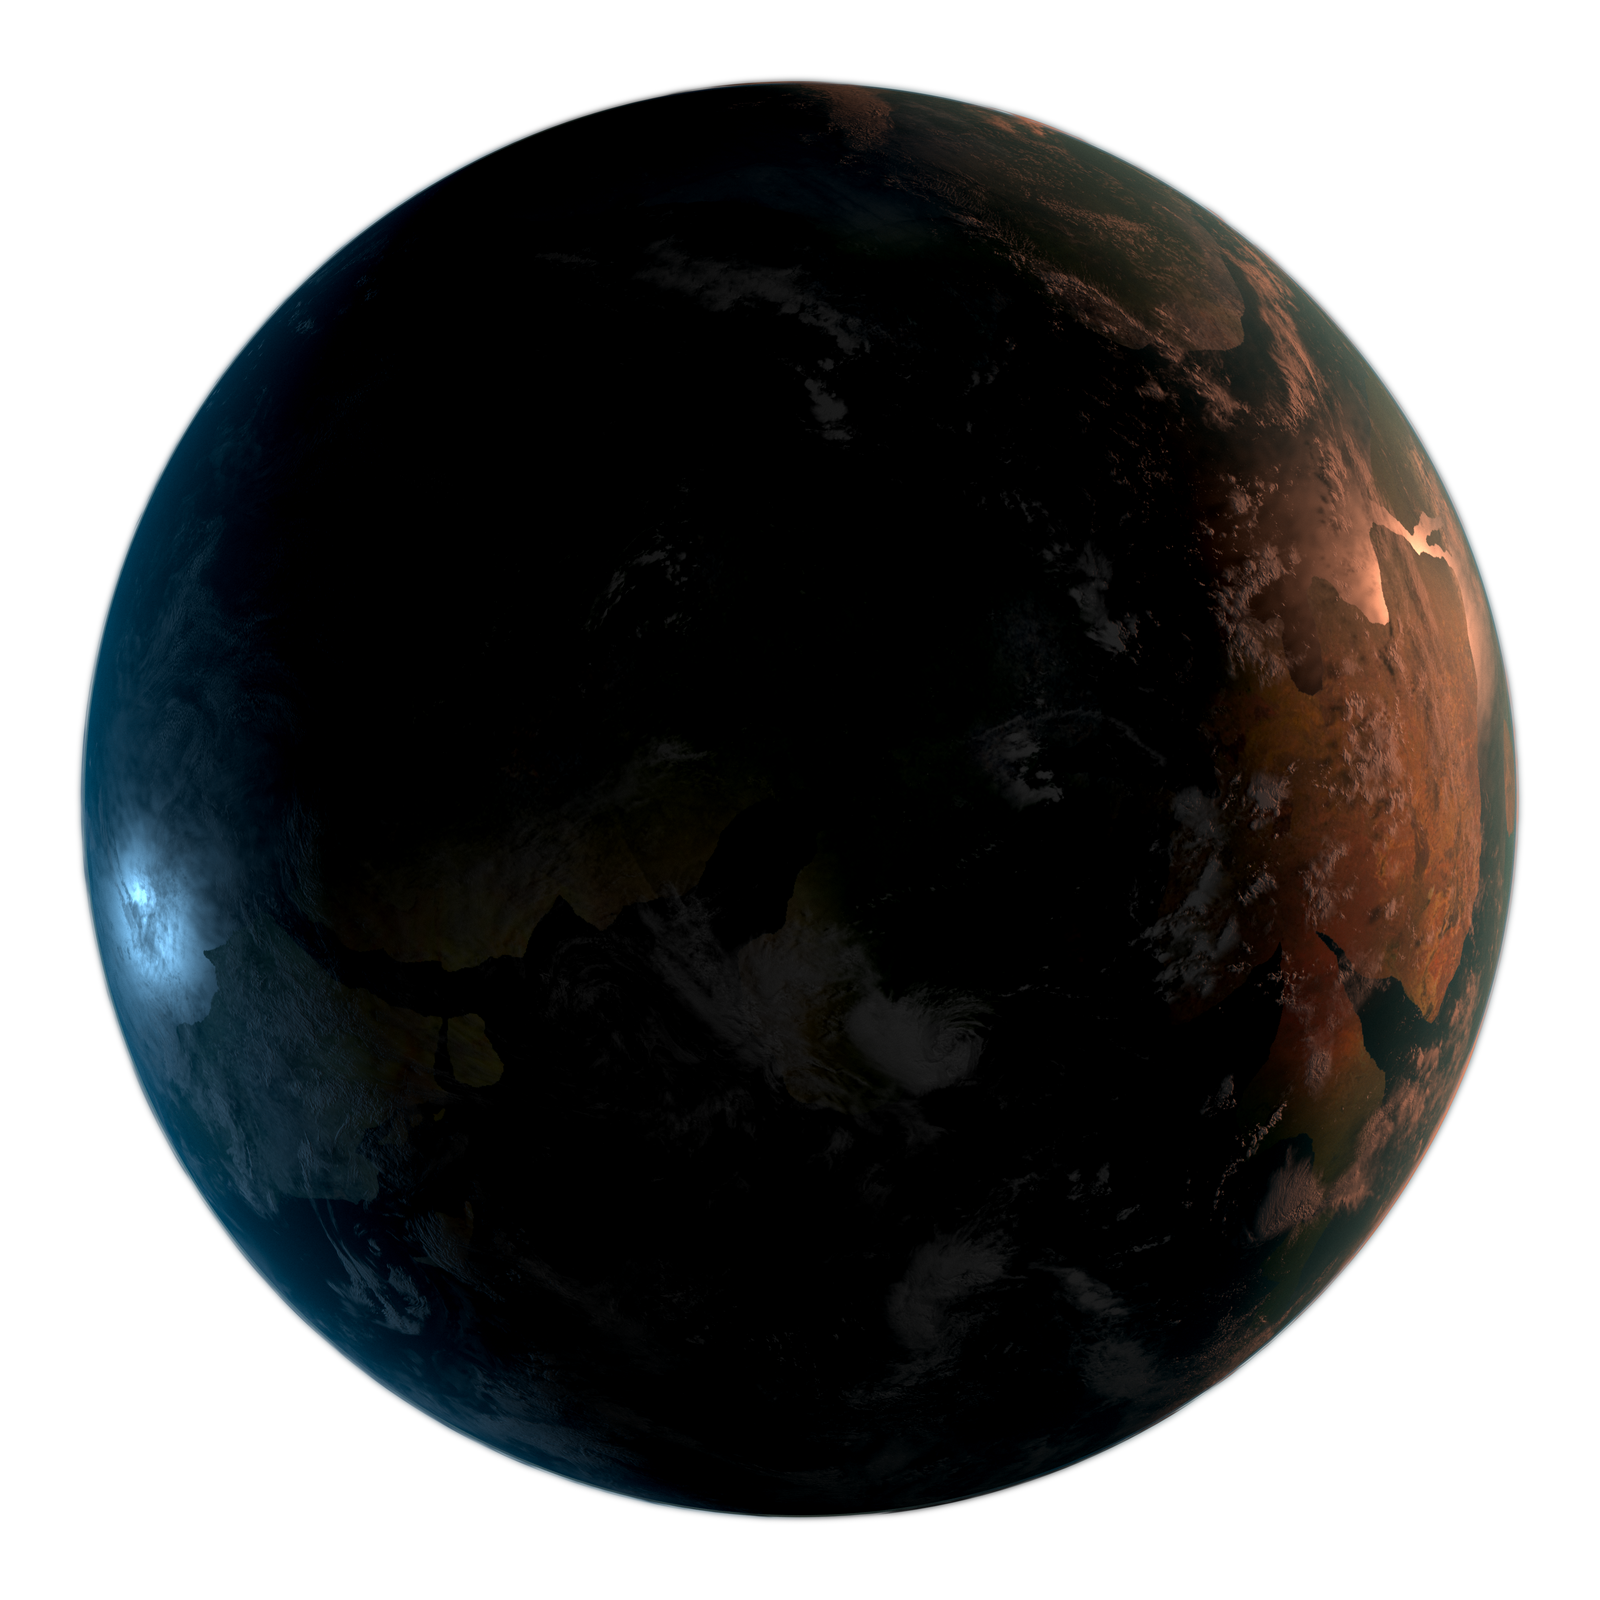 planet_stock__traveling_alone__by_dadrian_ddgxp6y-fullview.png